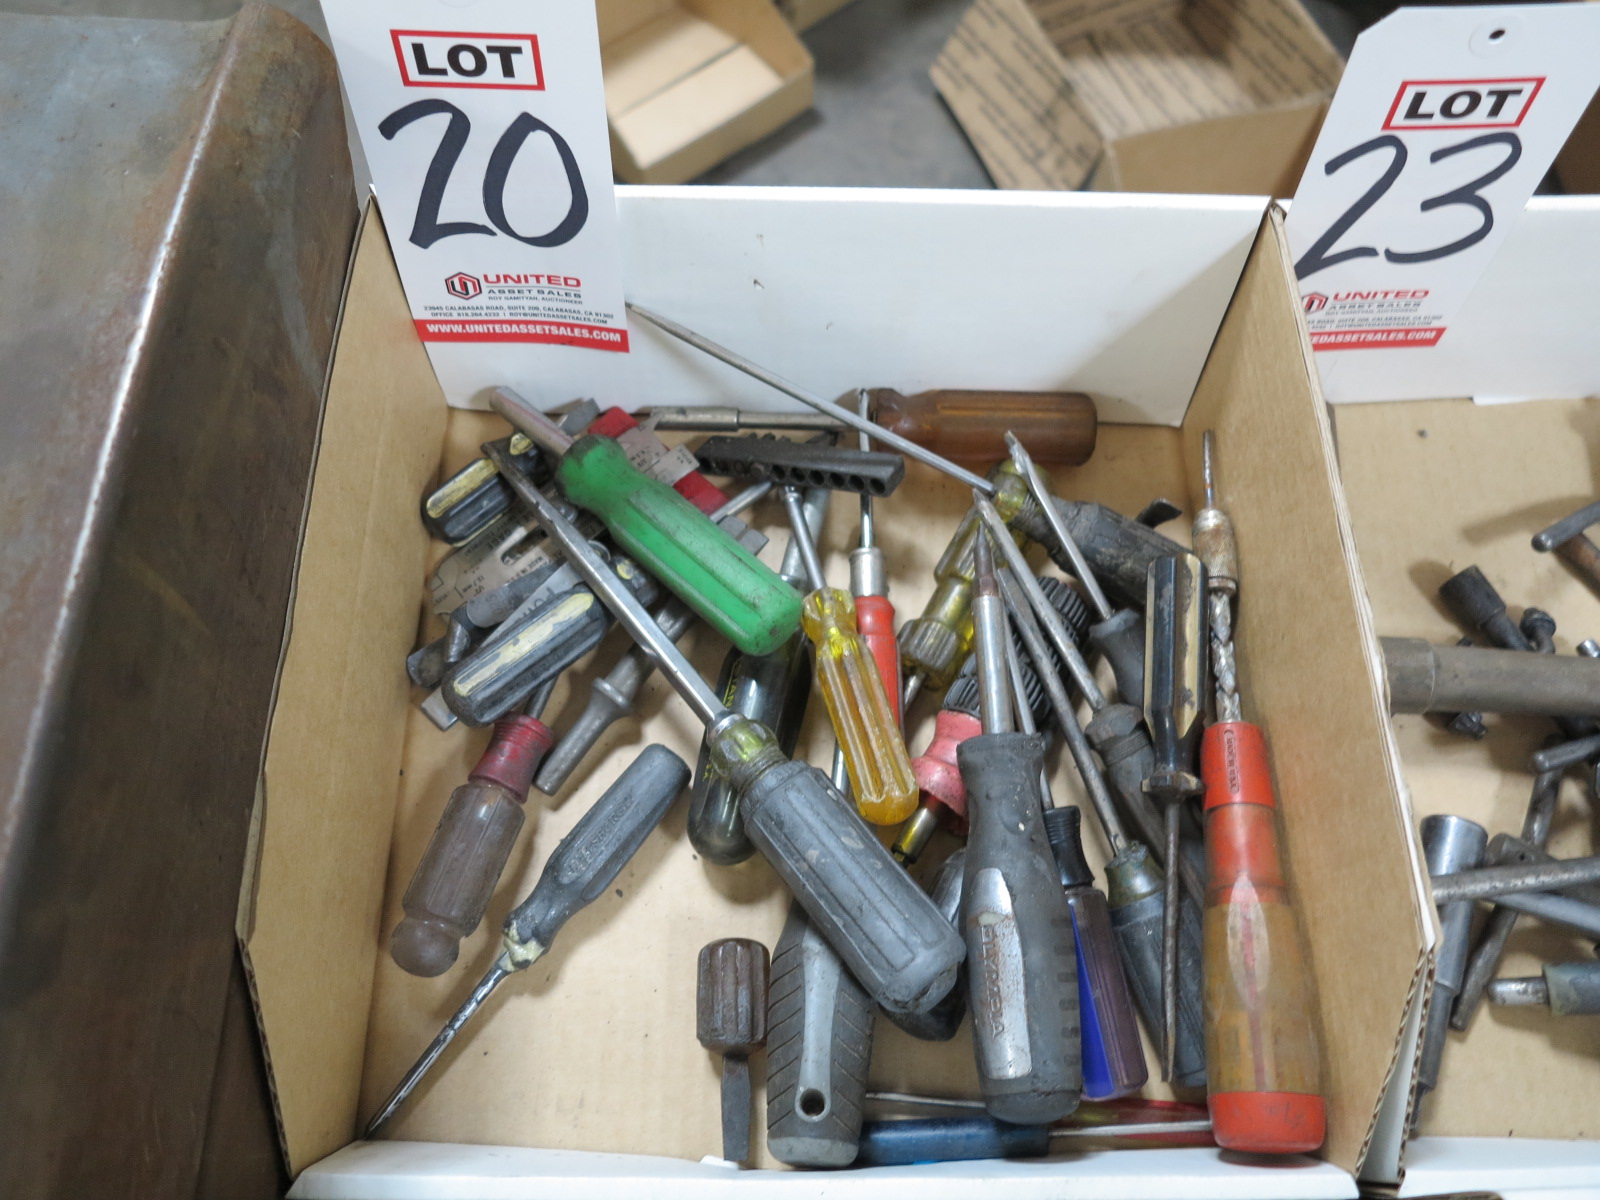 LOT - MISC SCREWDRIVERS